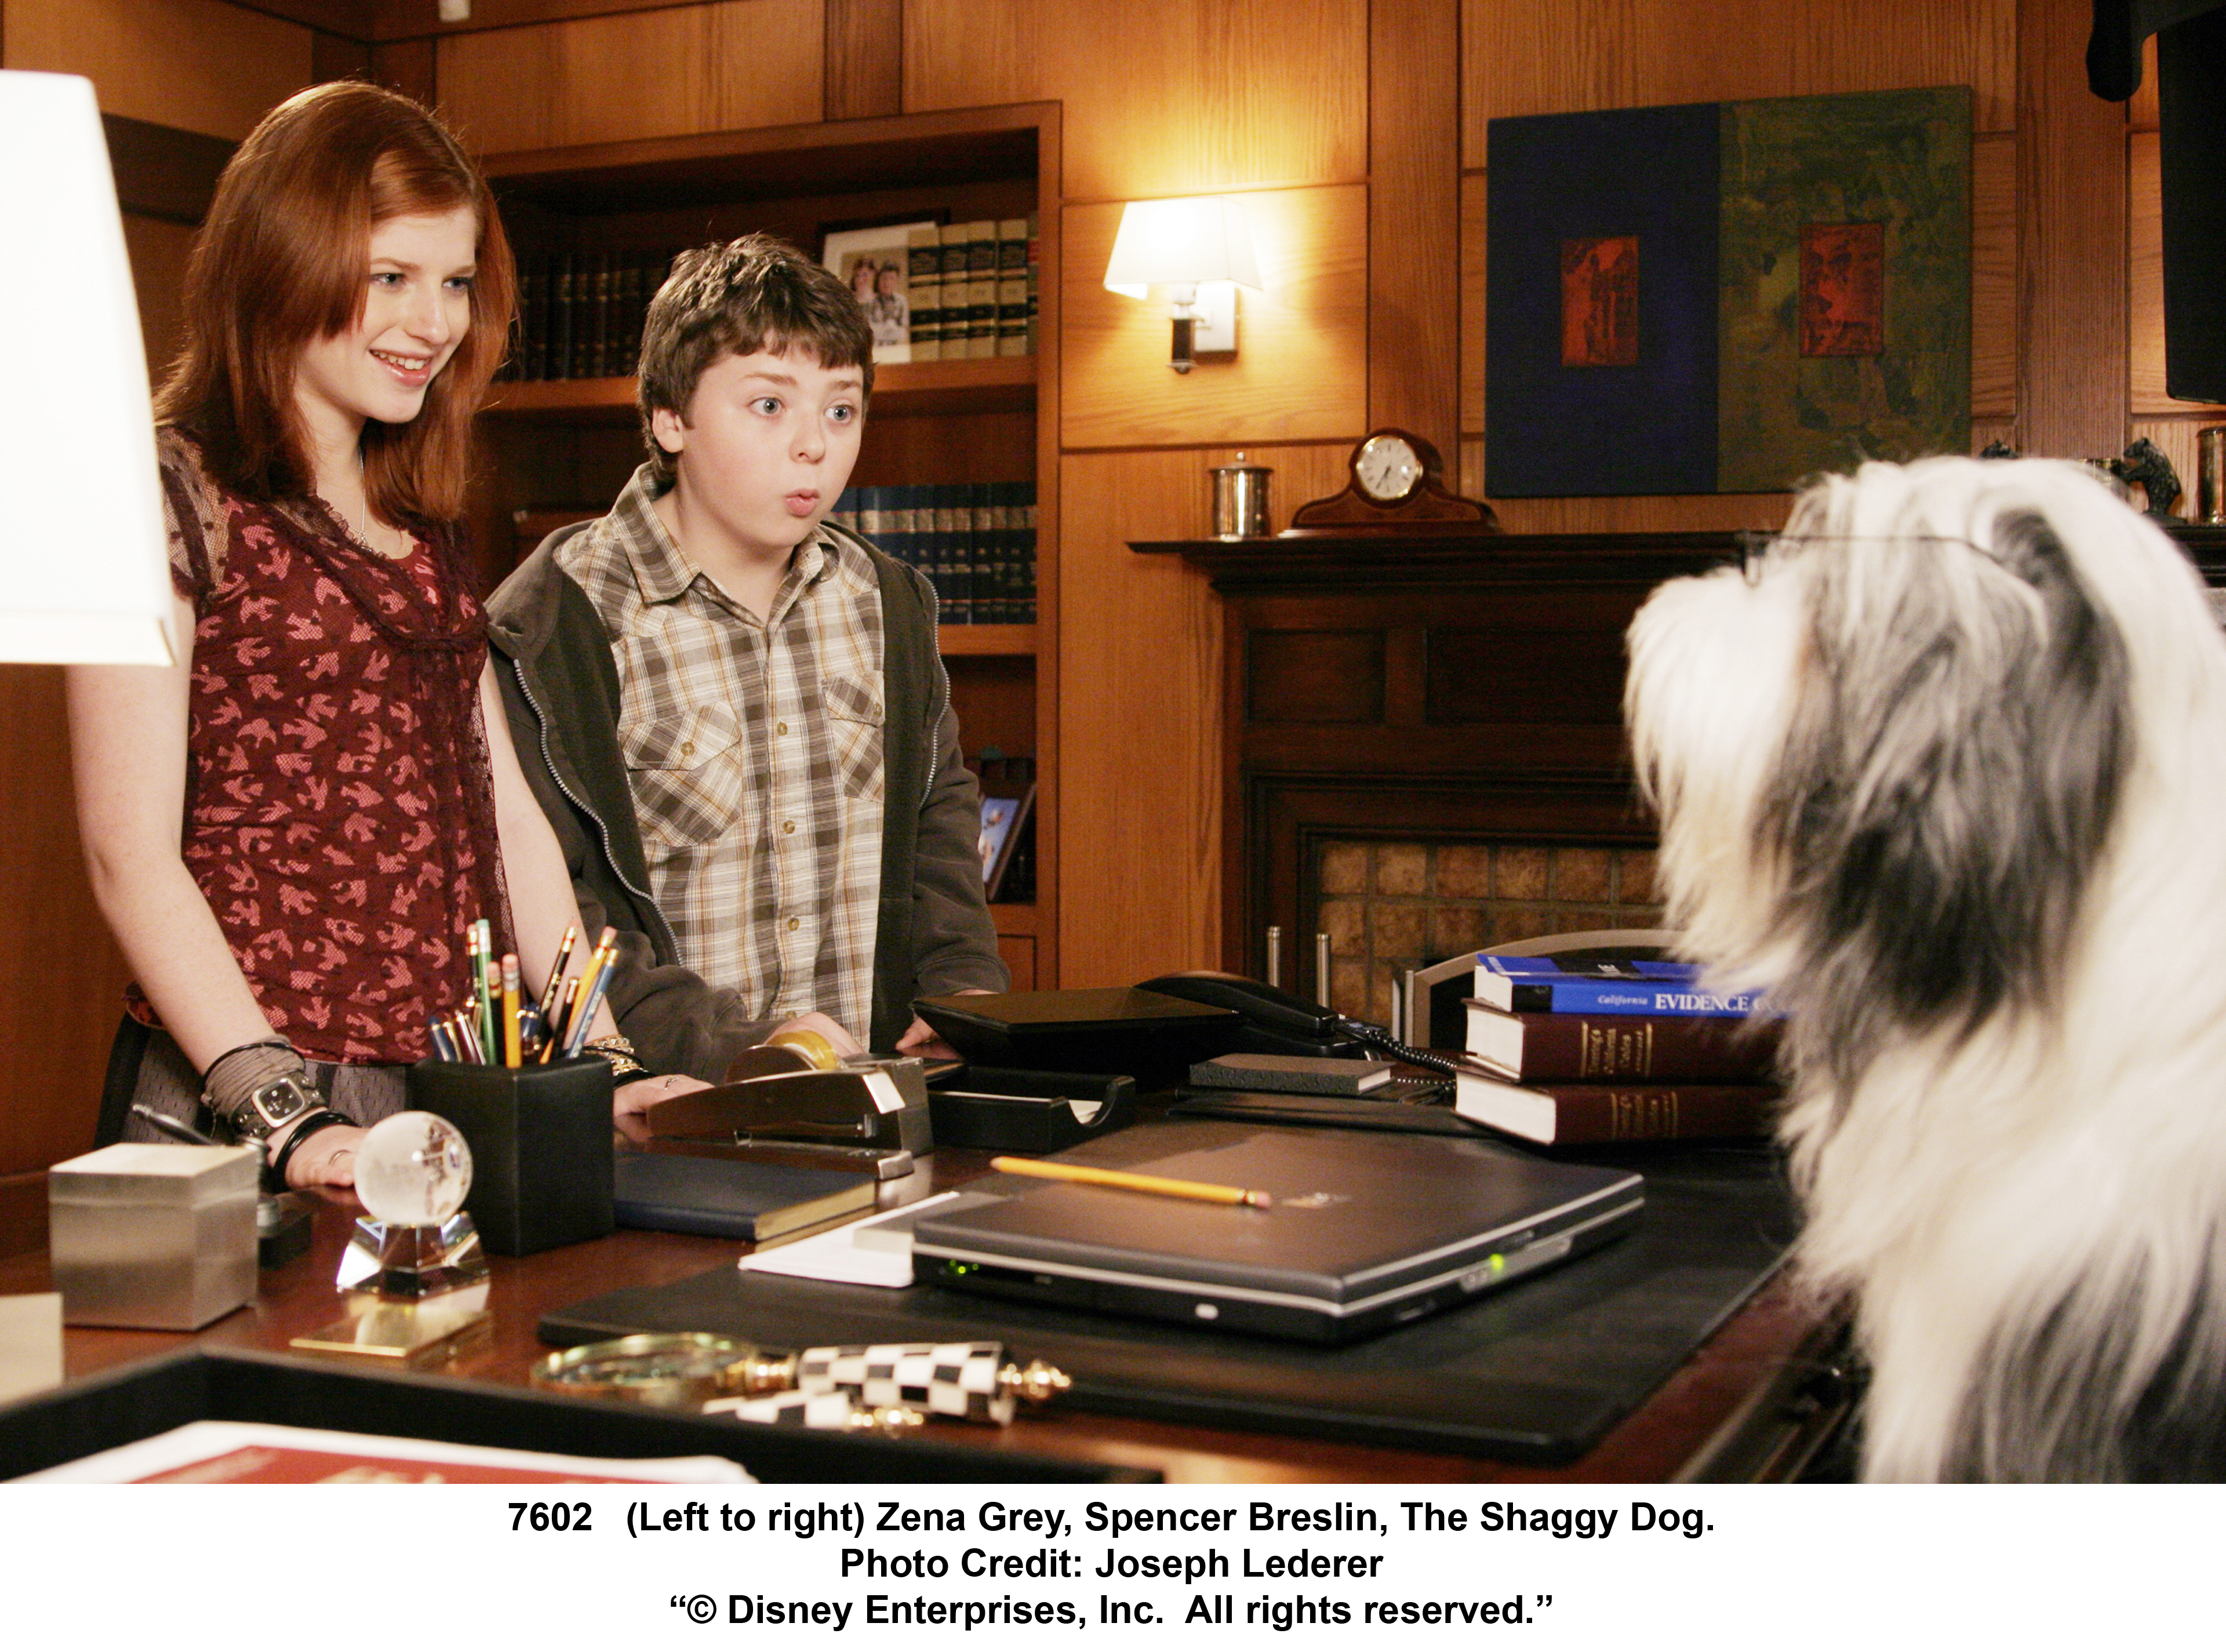 Spencer Breslin and Zena Grey in The Shaggy Dog (2006)